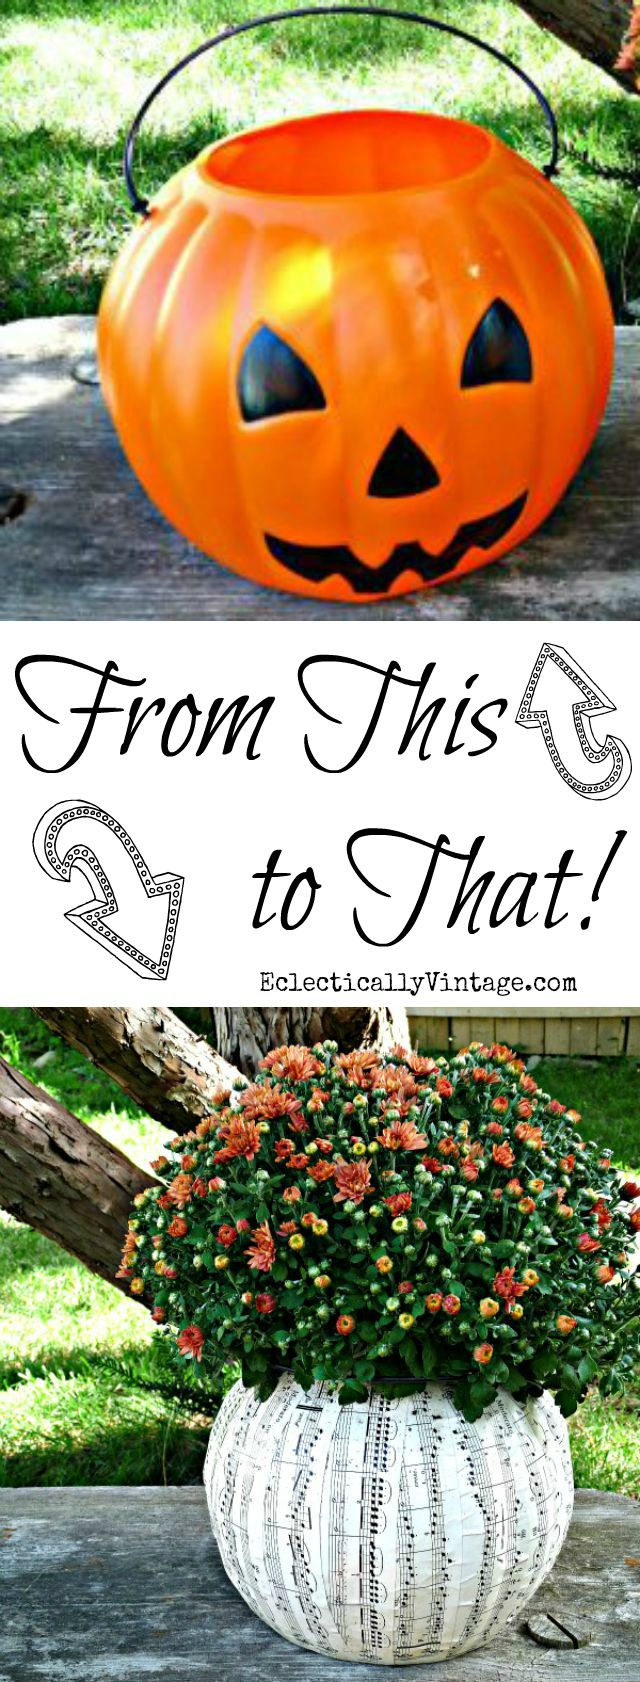 Plastic Pumpkin Ideas - turn an ugly plastic pumpkin pail into a fun planter - step by step directions kellyelko.com